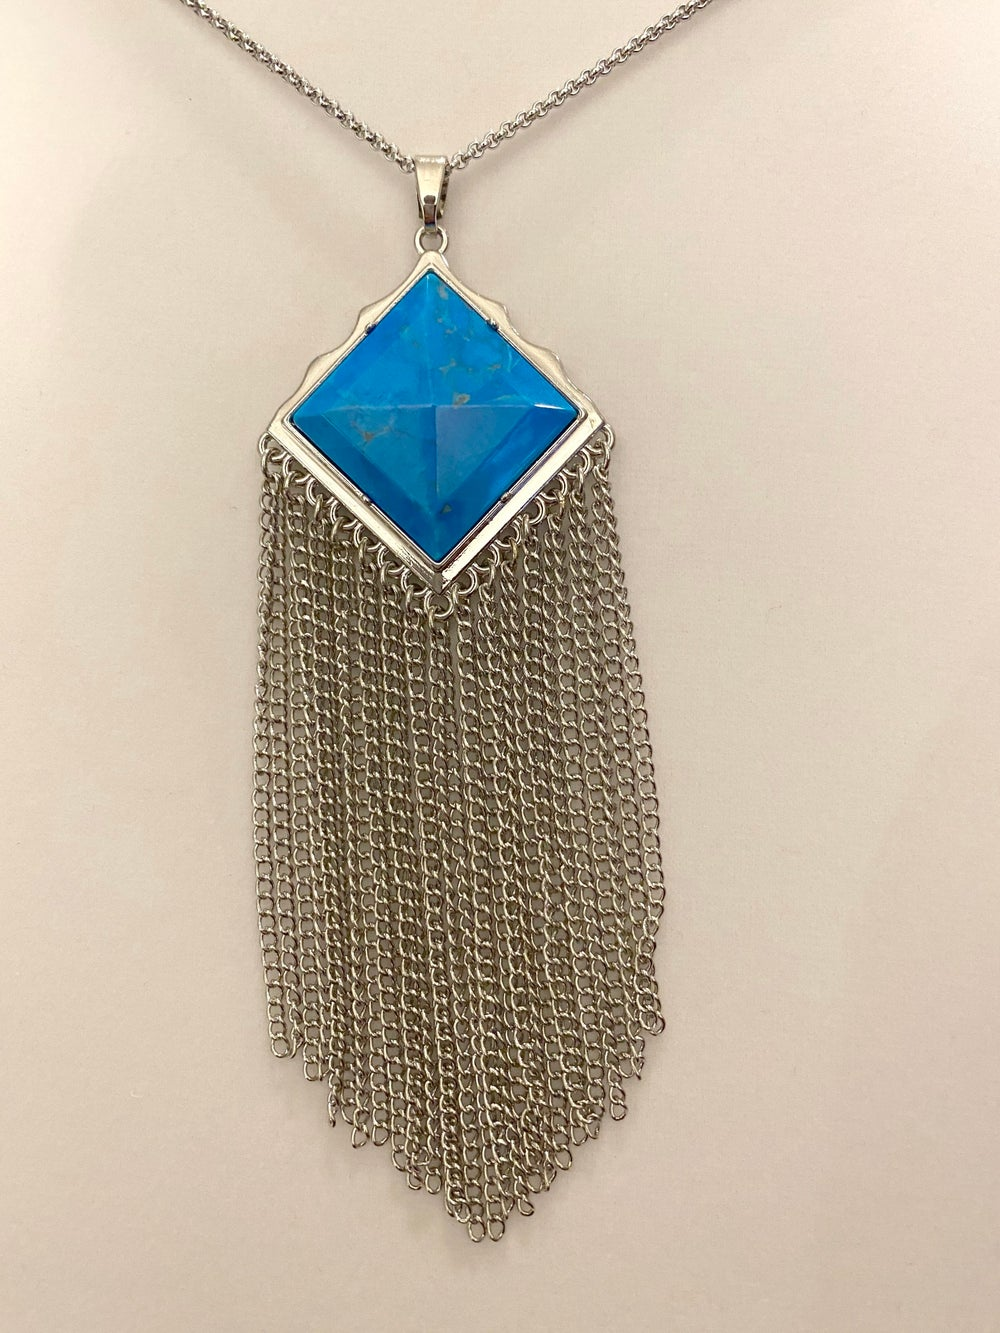 Turquoise Pendant with Tassels and Stainless Steel Chain Necklace